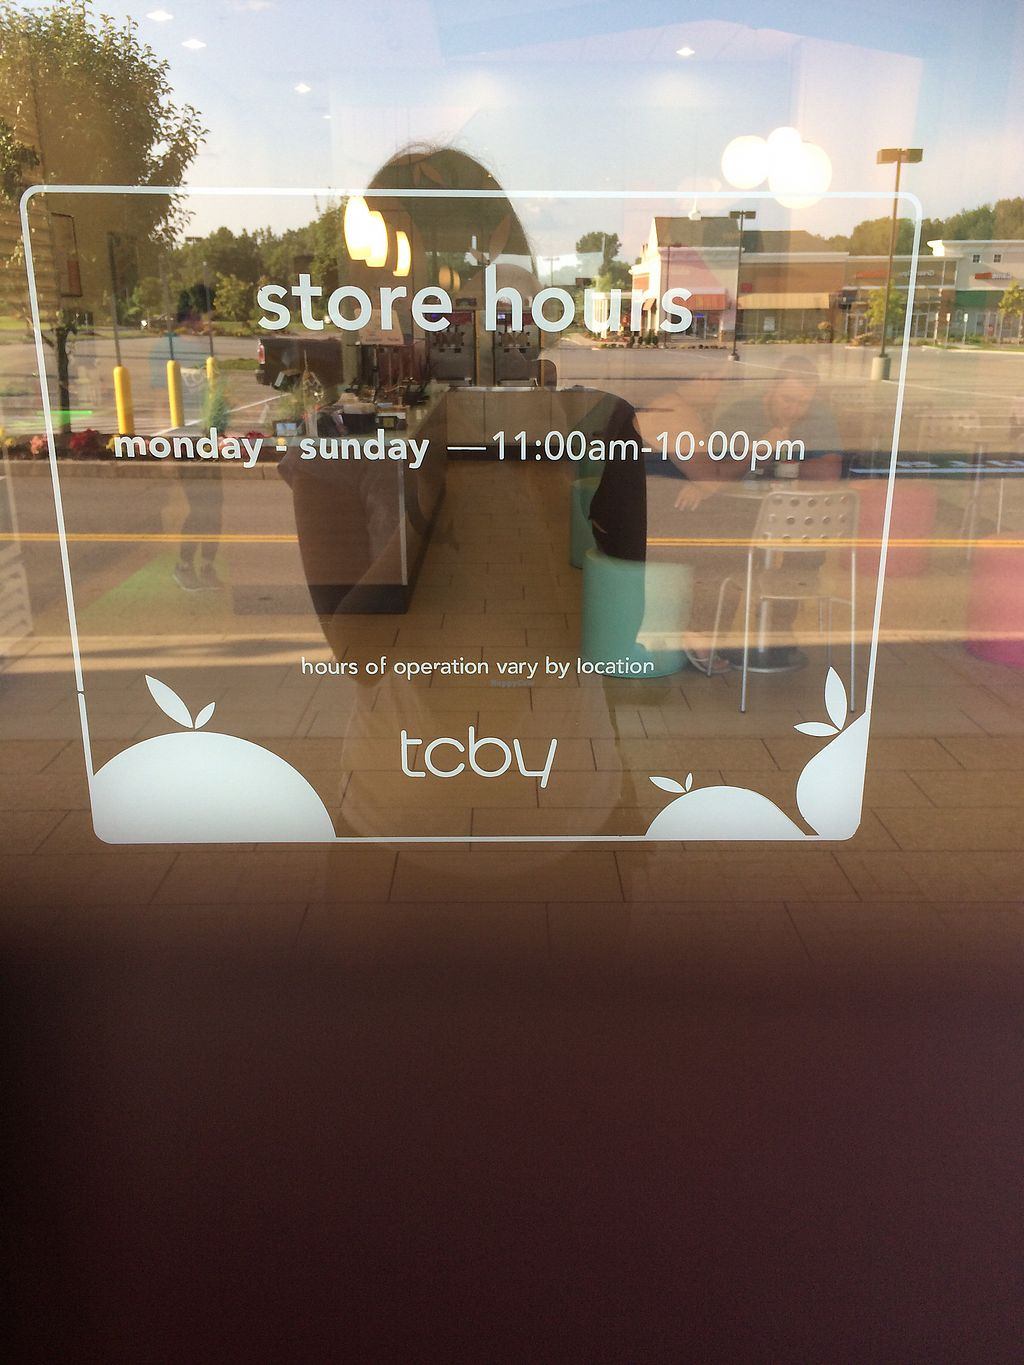 """Photo of CLOSED: TCBY  by <a href=""""/members/profile/fruitiJulie"""">fruitiJulie</a> <br/>store hours on window <br/> July 30, 2017  - <a href='/contact/abuse/image/97381/286867'>Report</a>"""